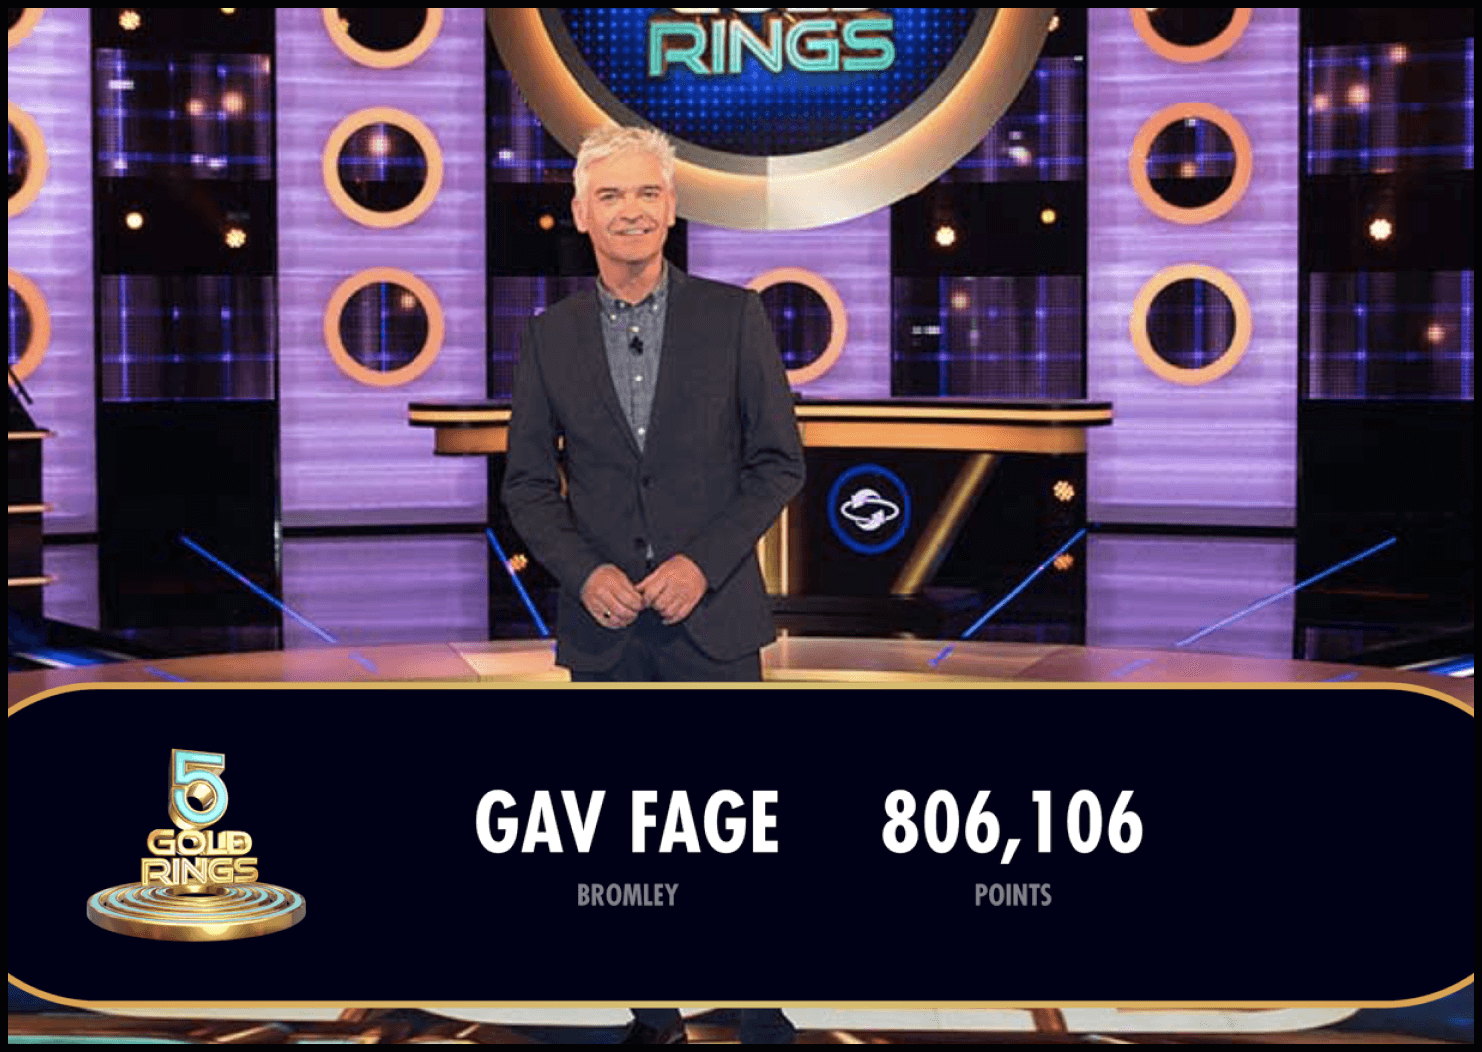 Feeding leaderboard results into the main screen on 5 Gold Rings